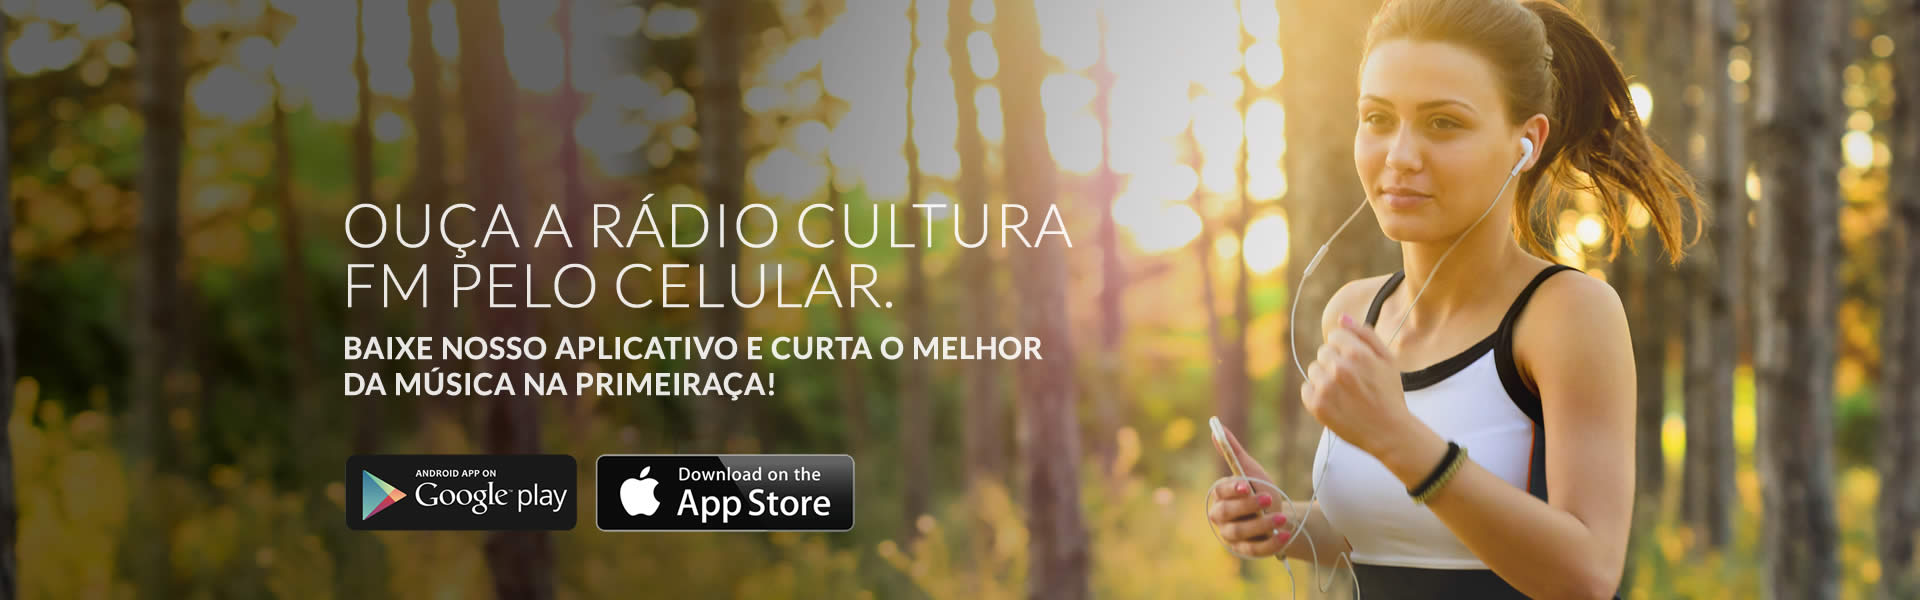 Aplicativo Iphone e Android